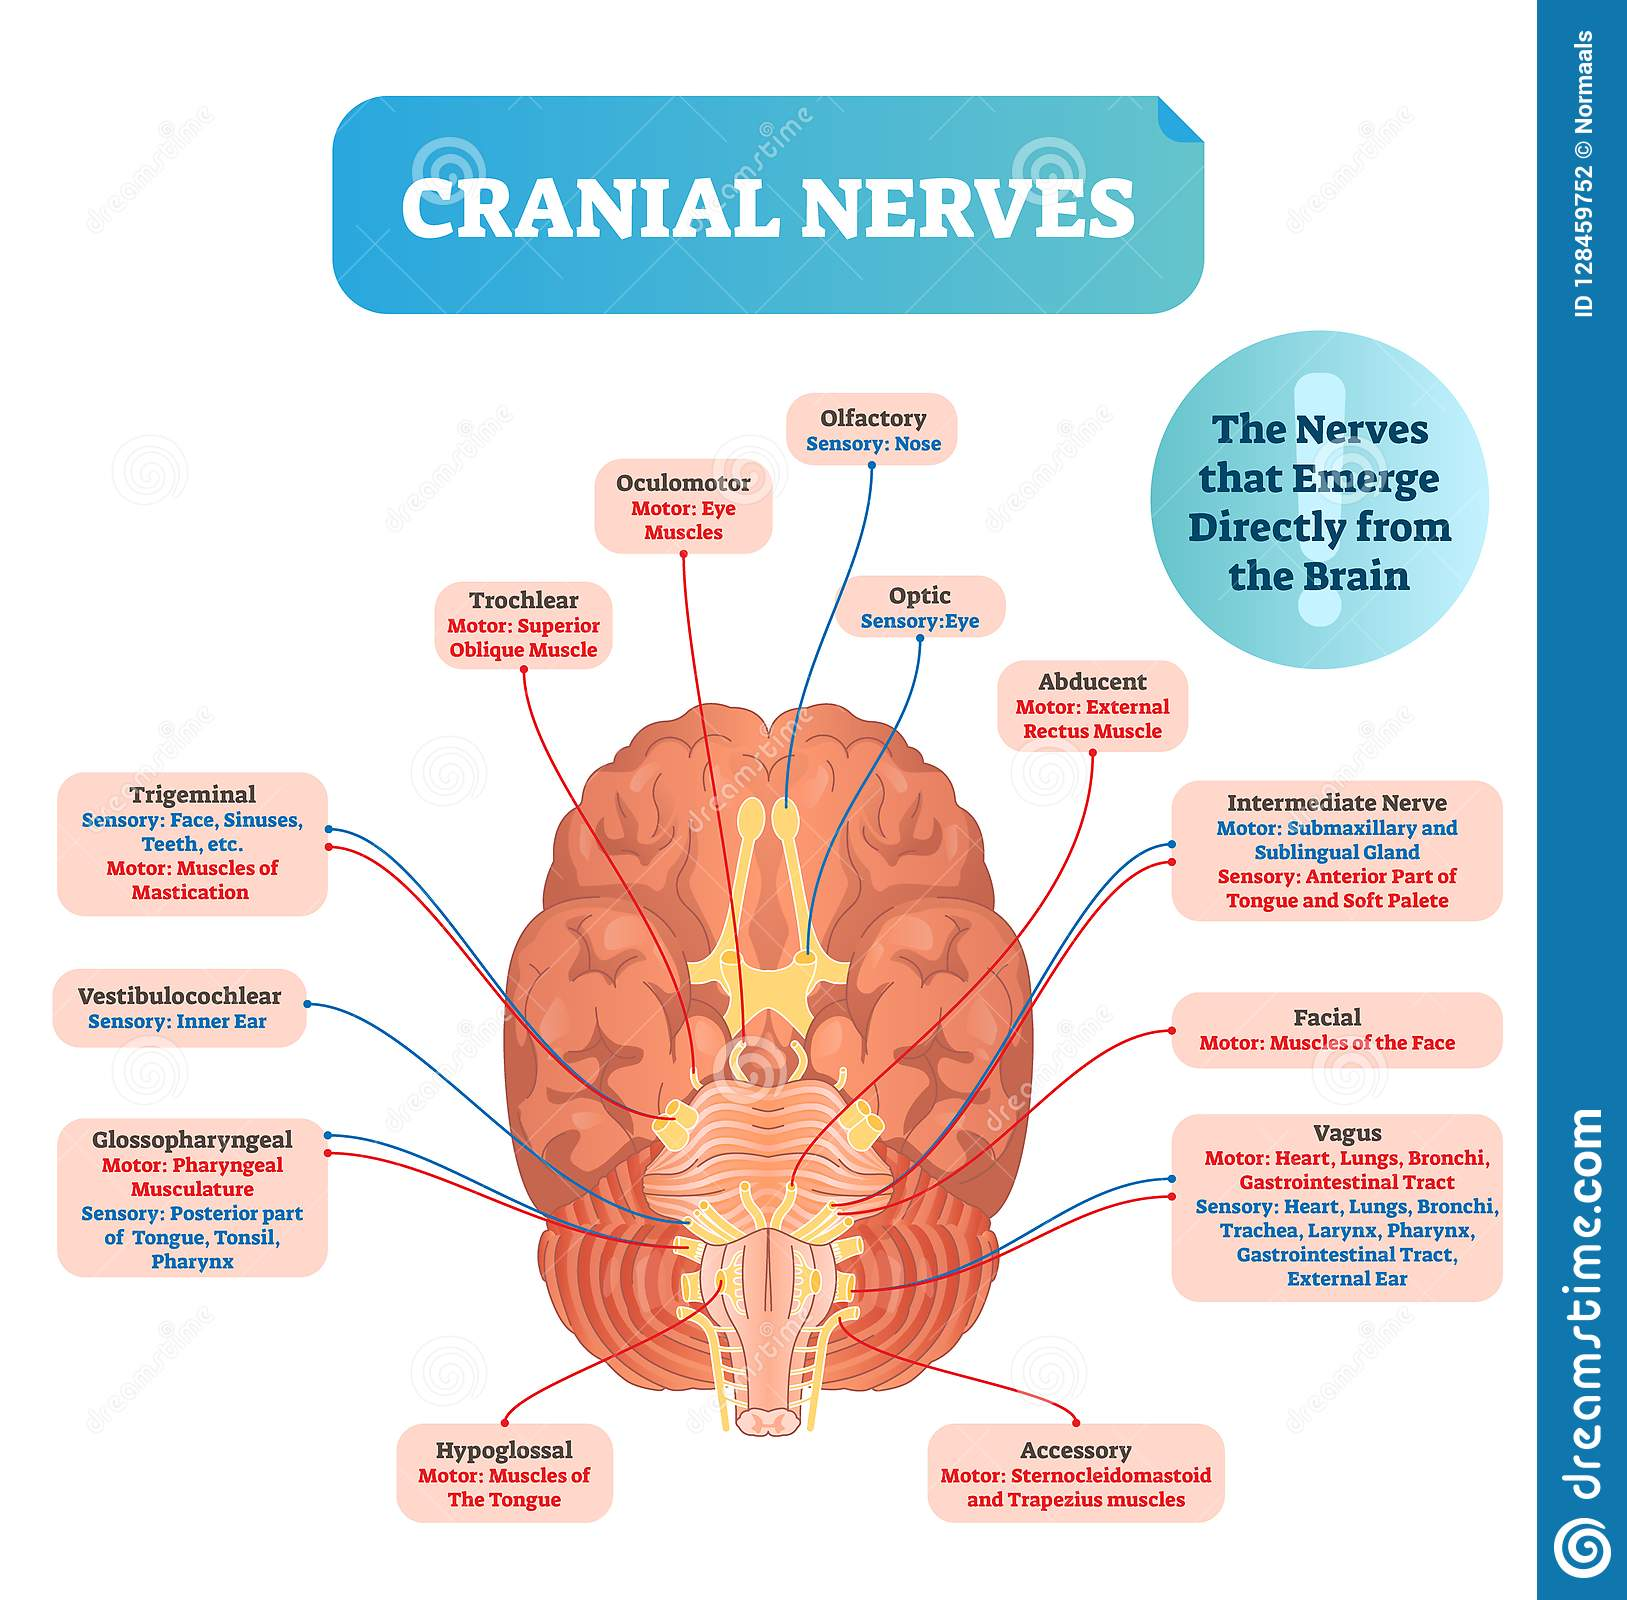 hight resolution of cranial nerves vector illustration labeled diagram with brain sections